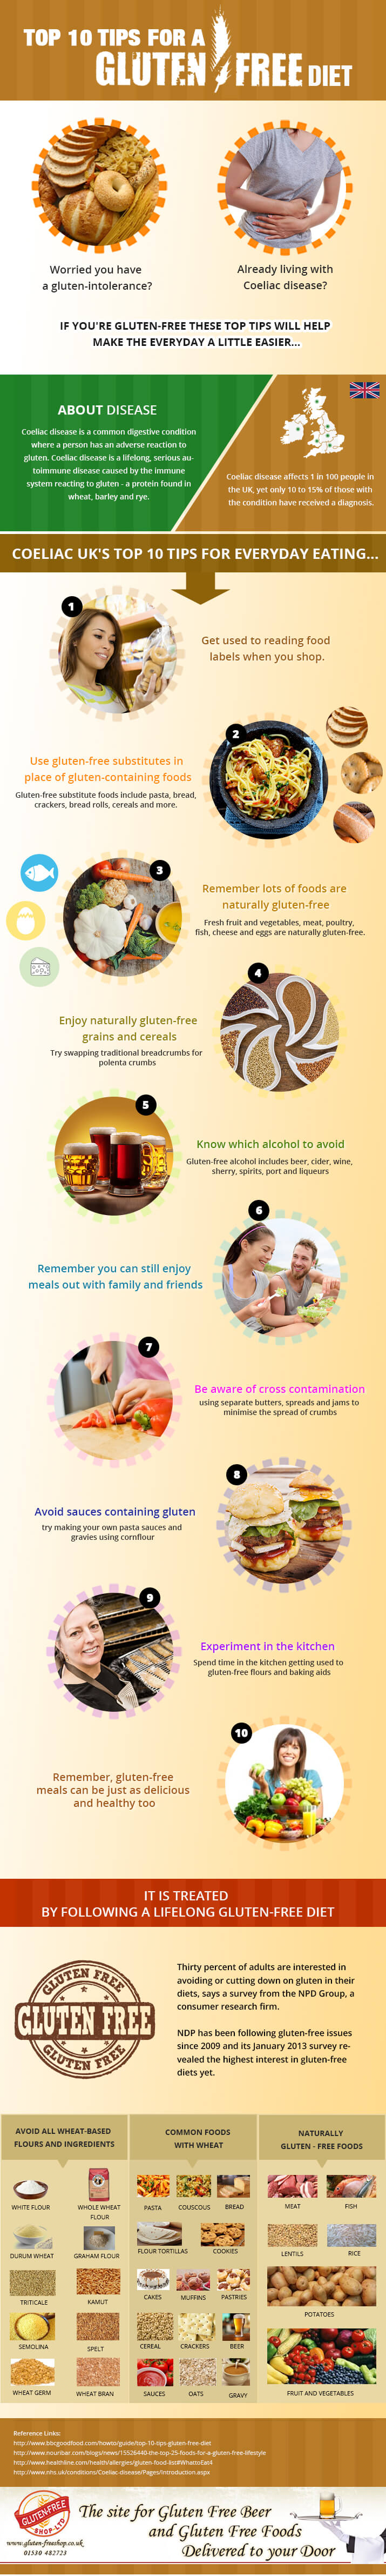 Top-10-Tips-for-a-Gluten-free-Diet-Infographic